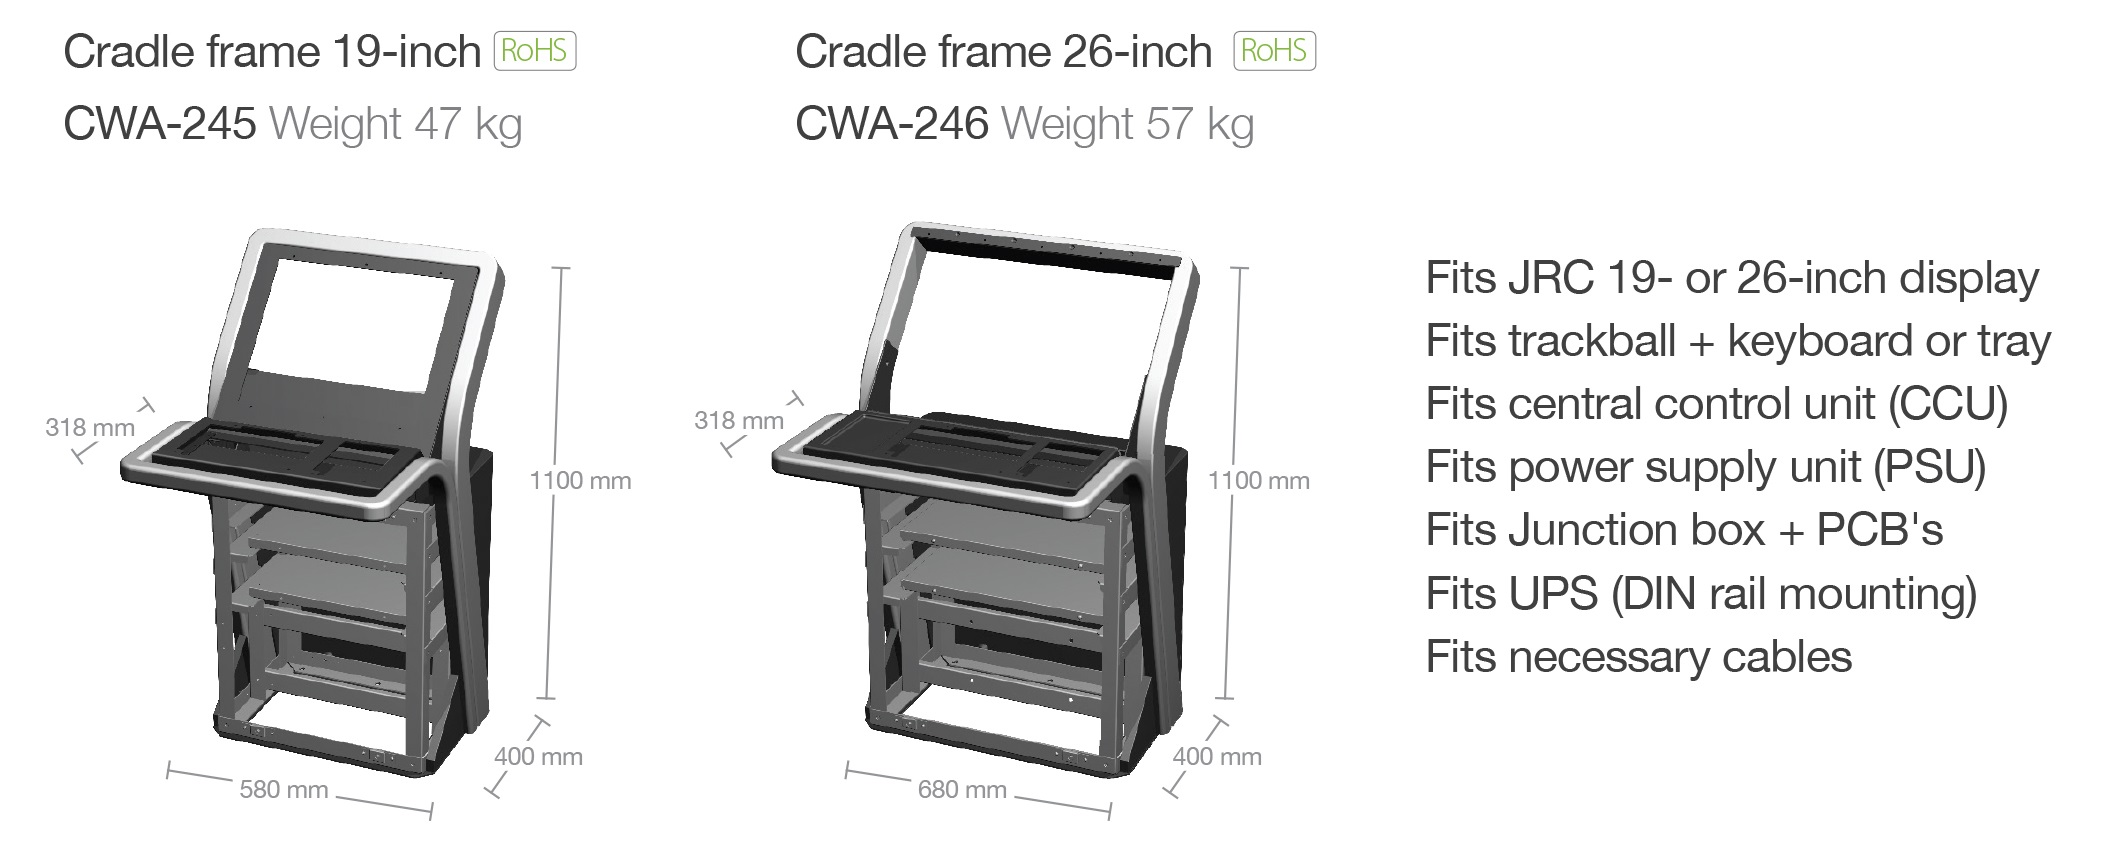 mfd all cradleframes